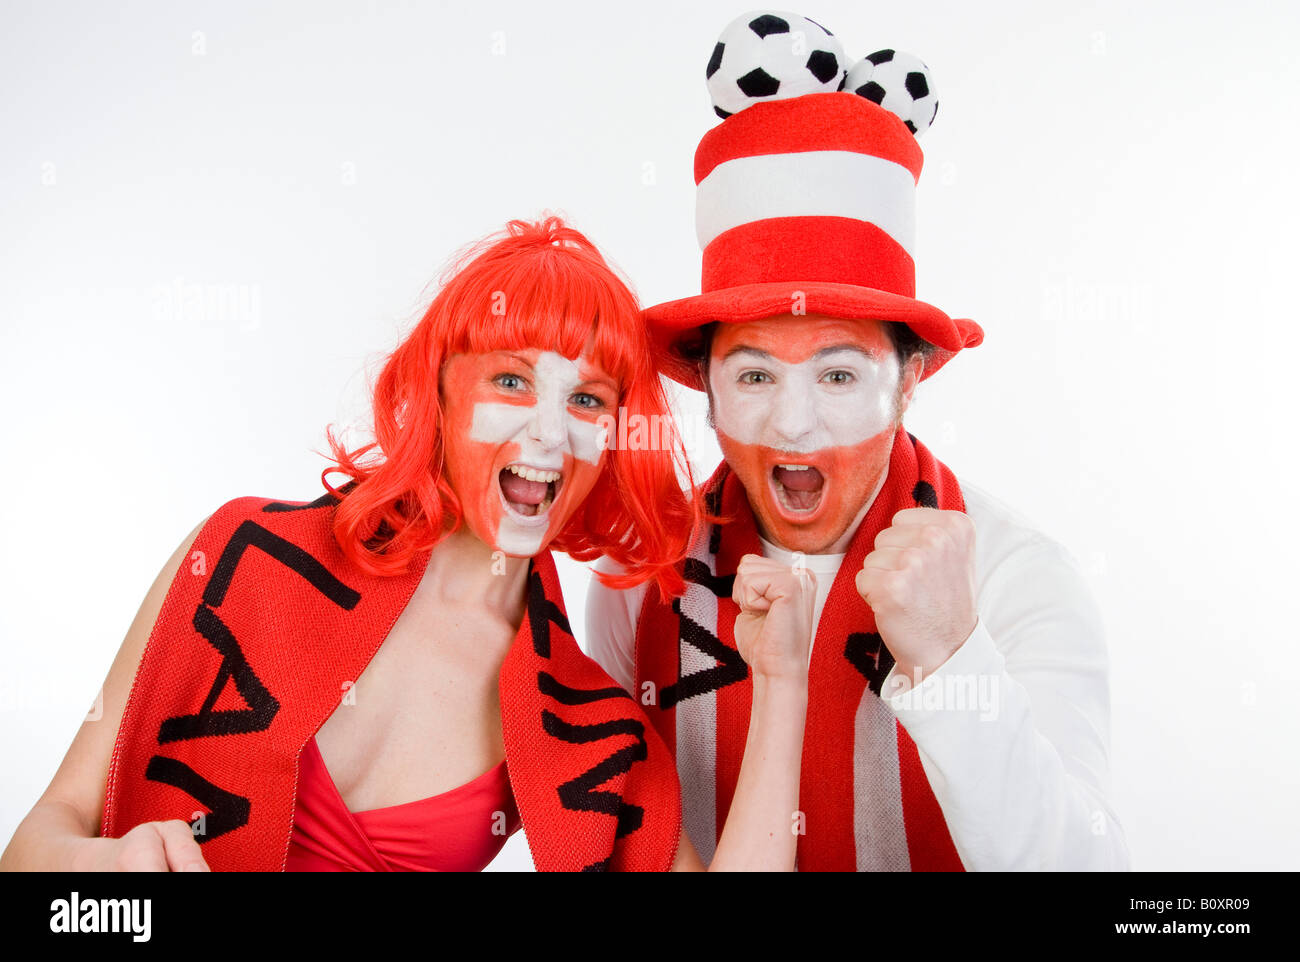 Austrian and Swiss soccer fans, EURO 2008. Man and woman with clenched fists - Stock Image